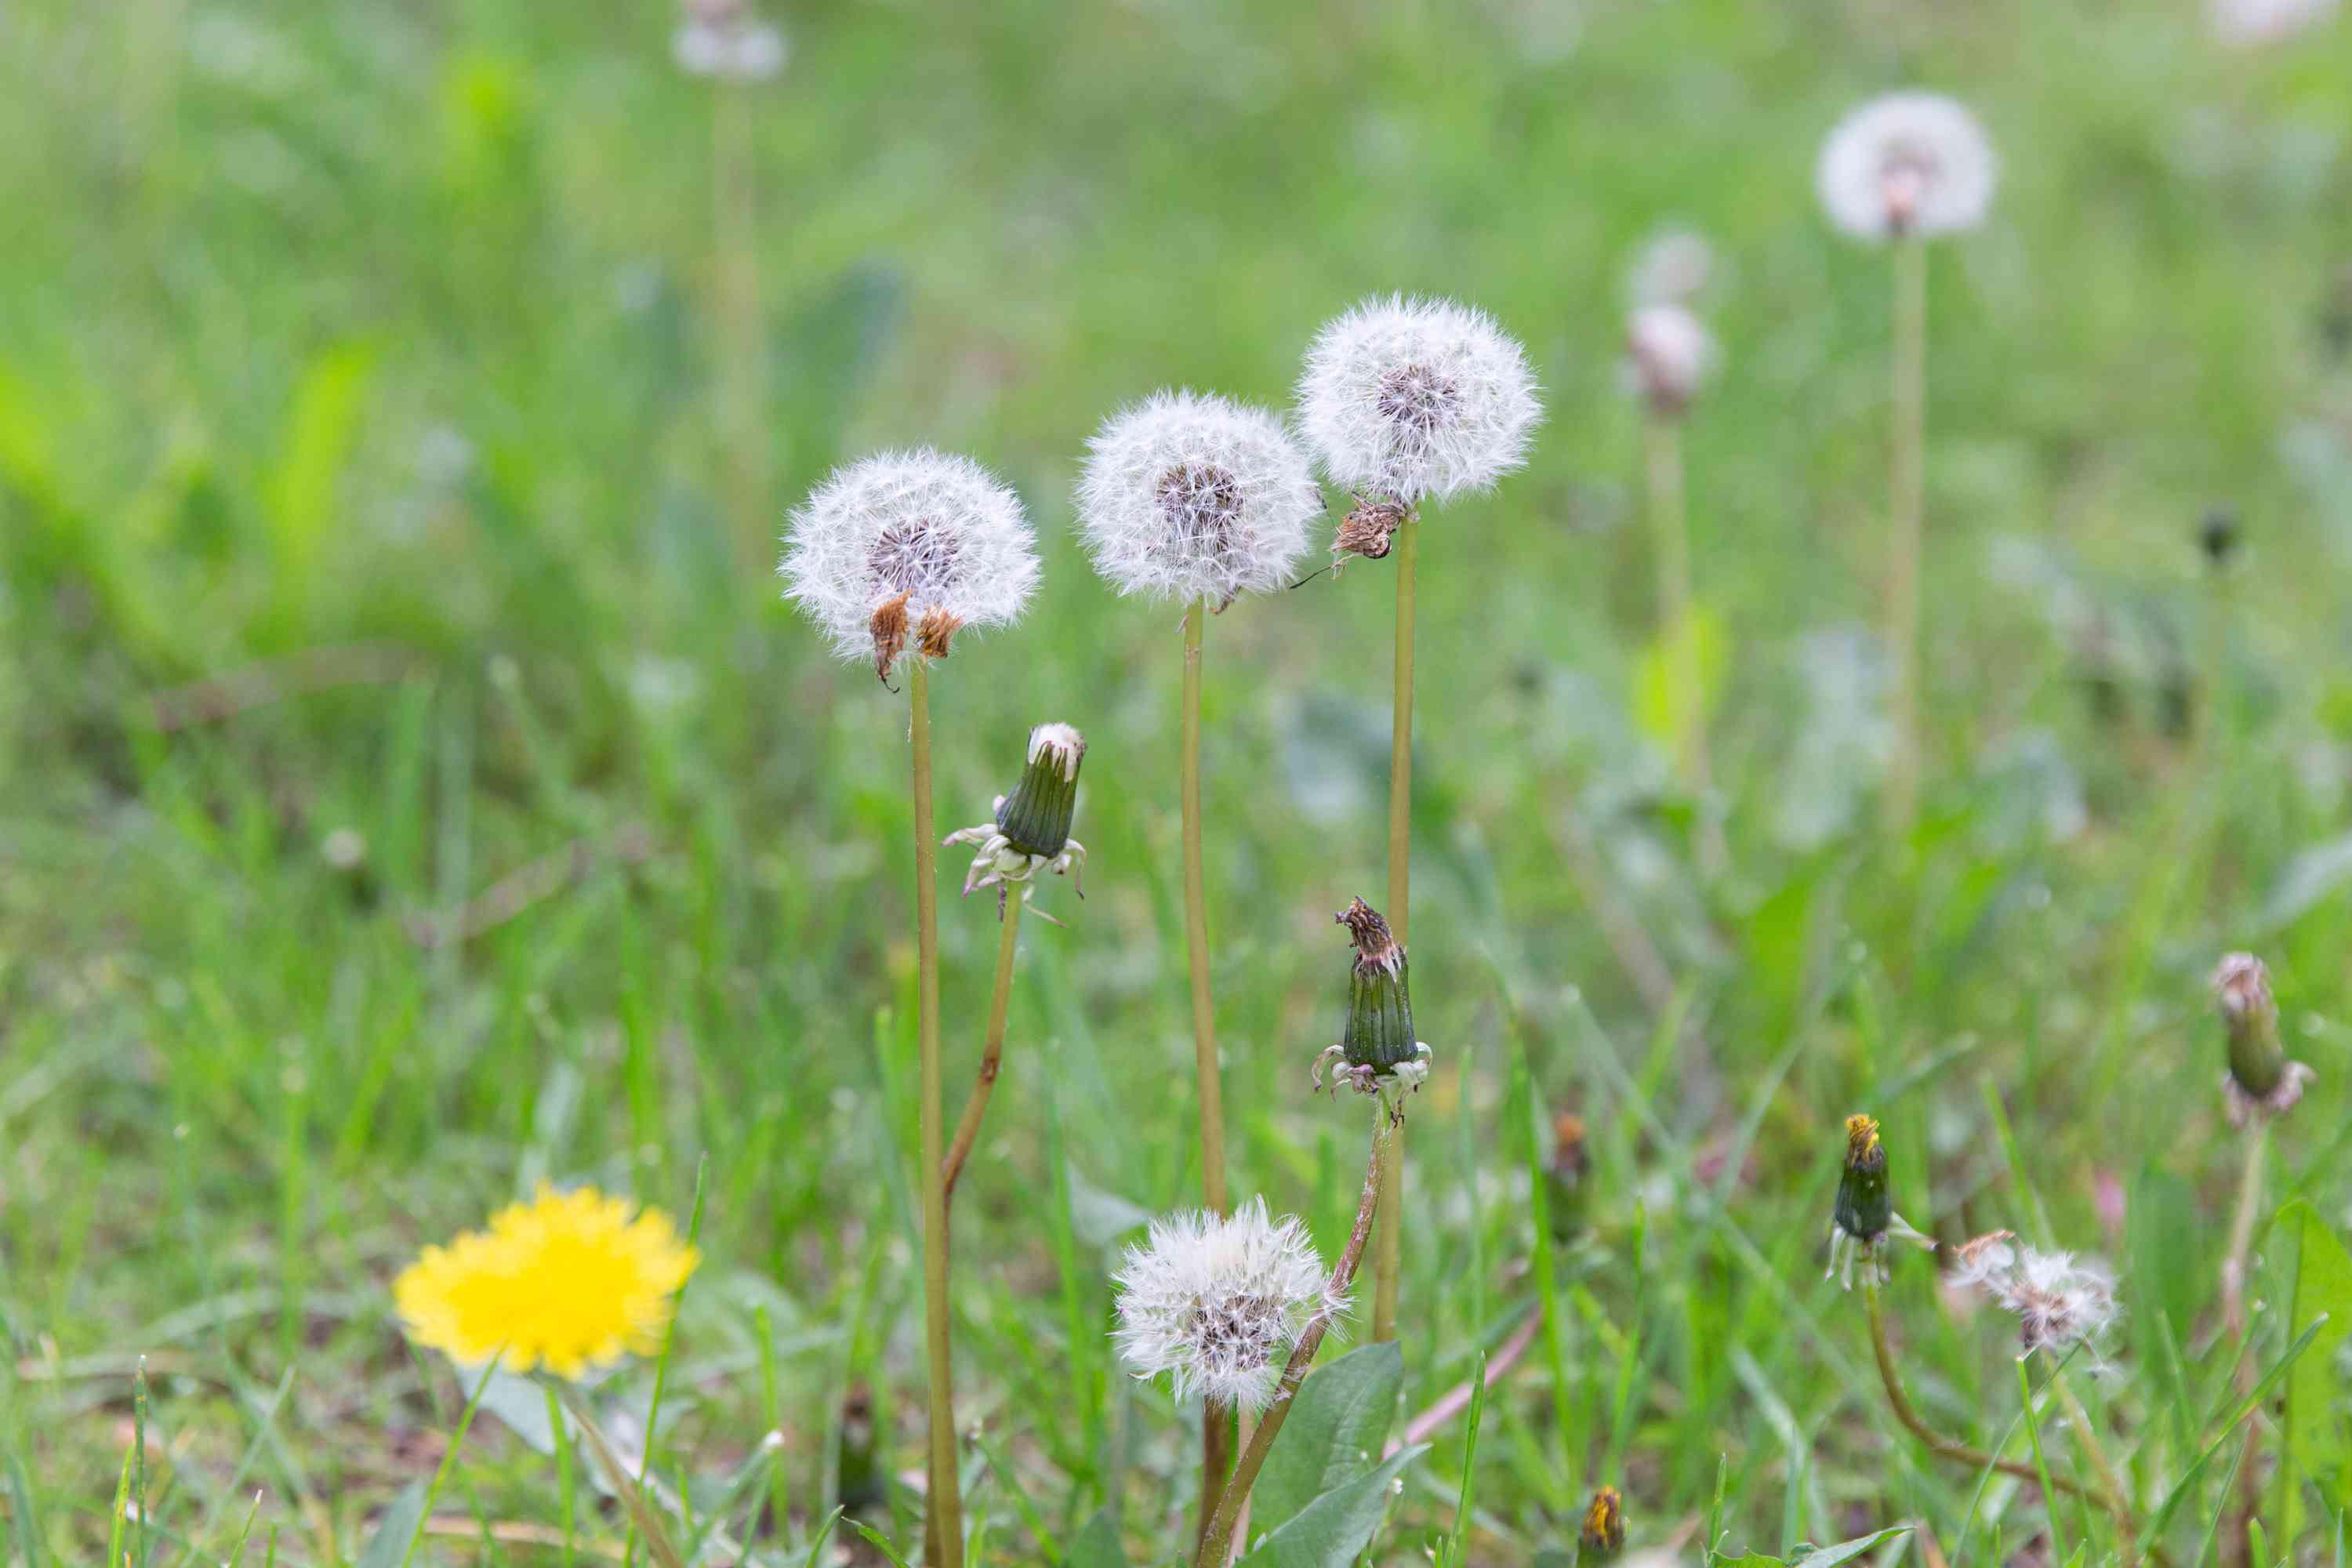 Dandelion weed with small white seedheads surrounding top of stems in grass